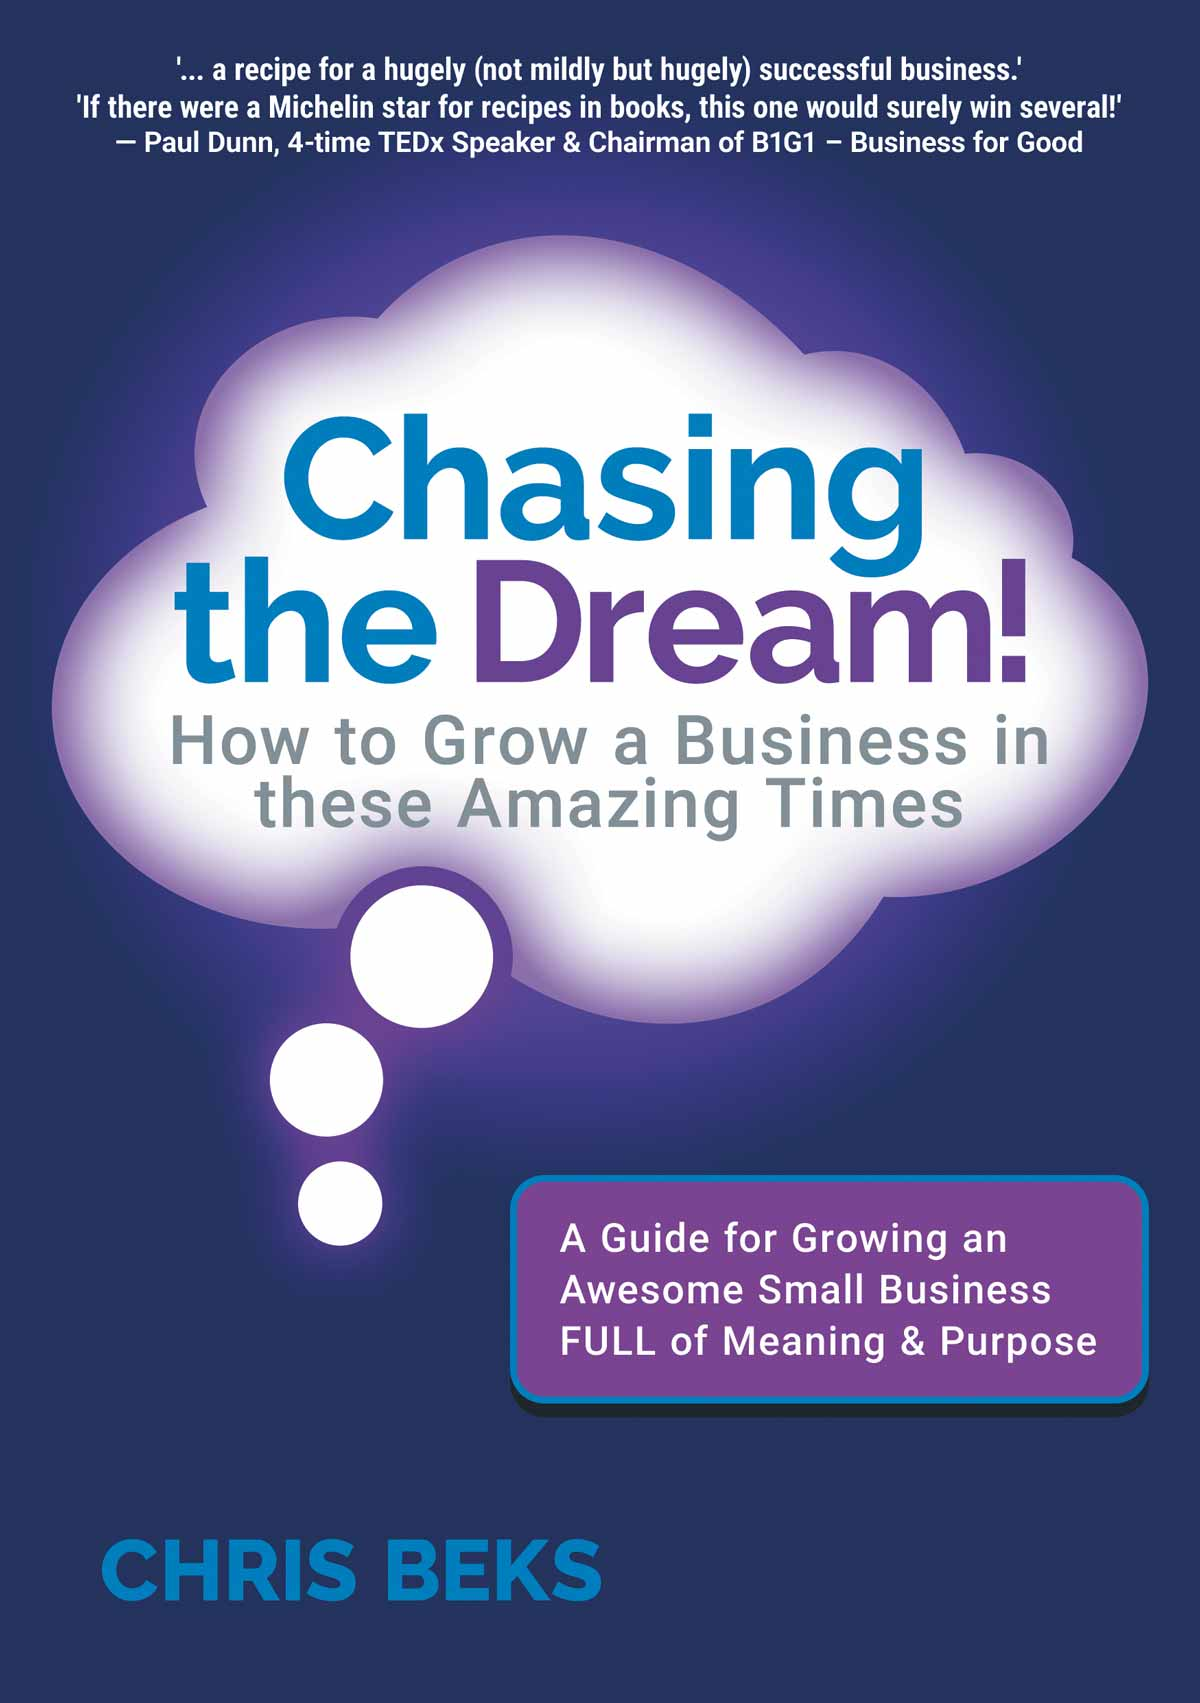 Chasing the Dream Book